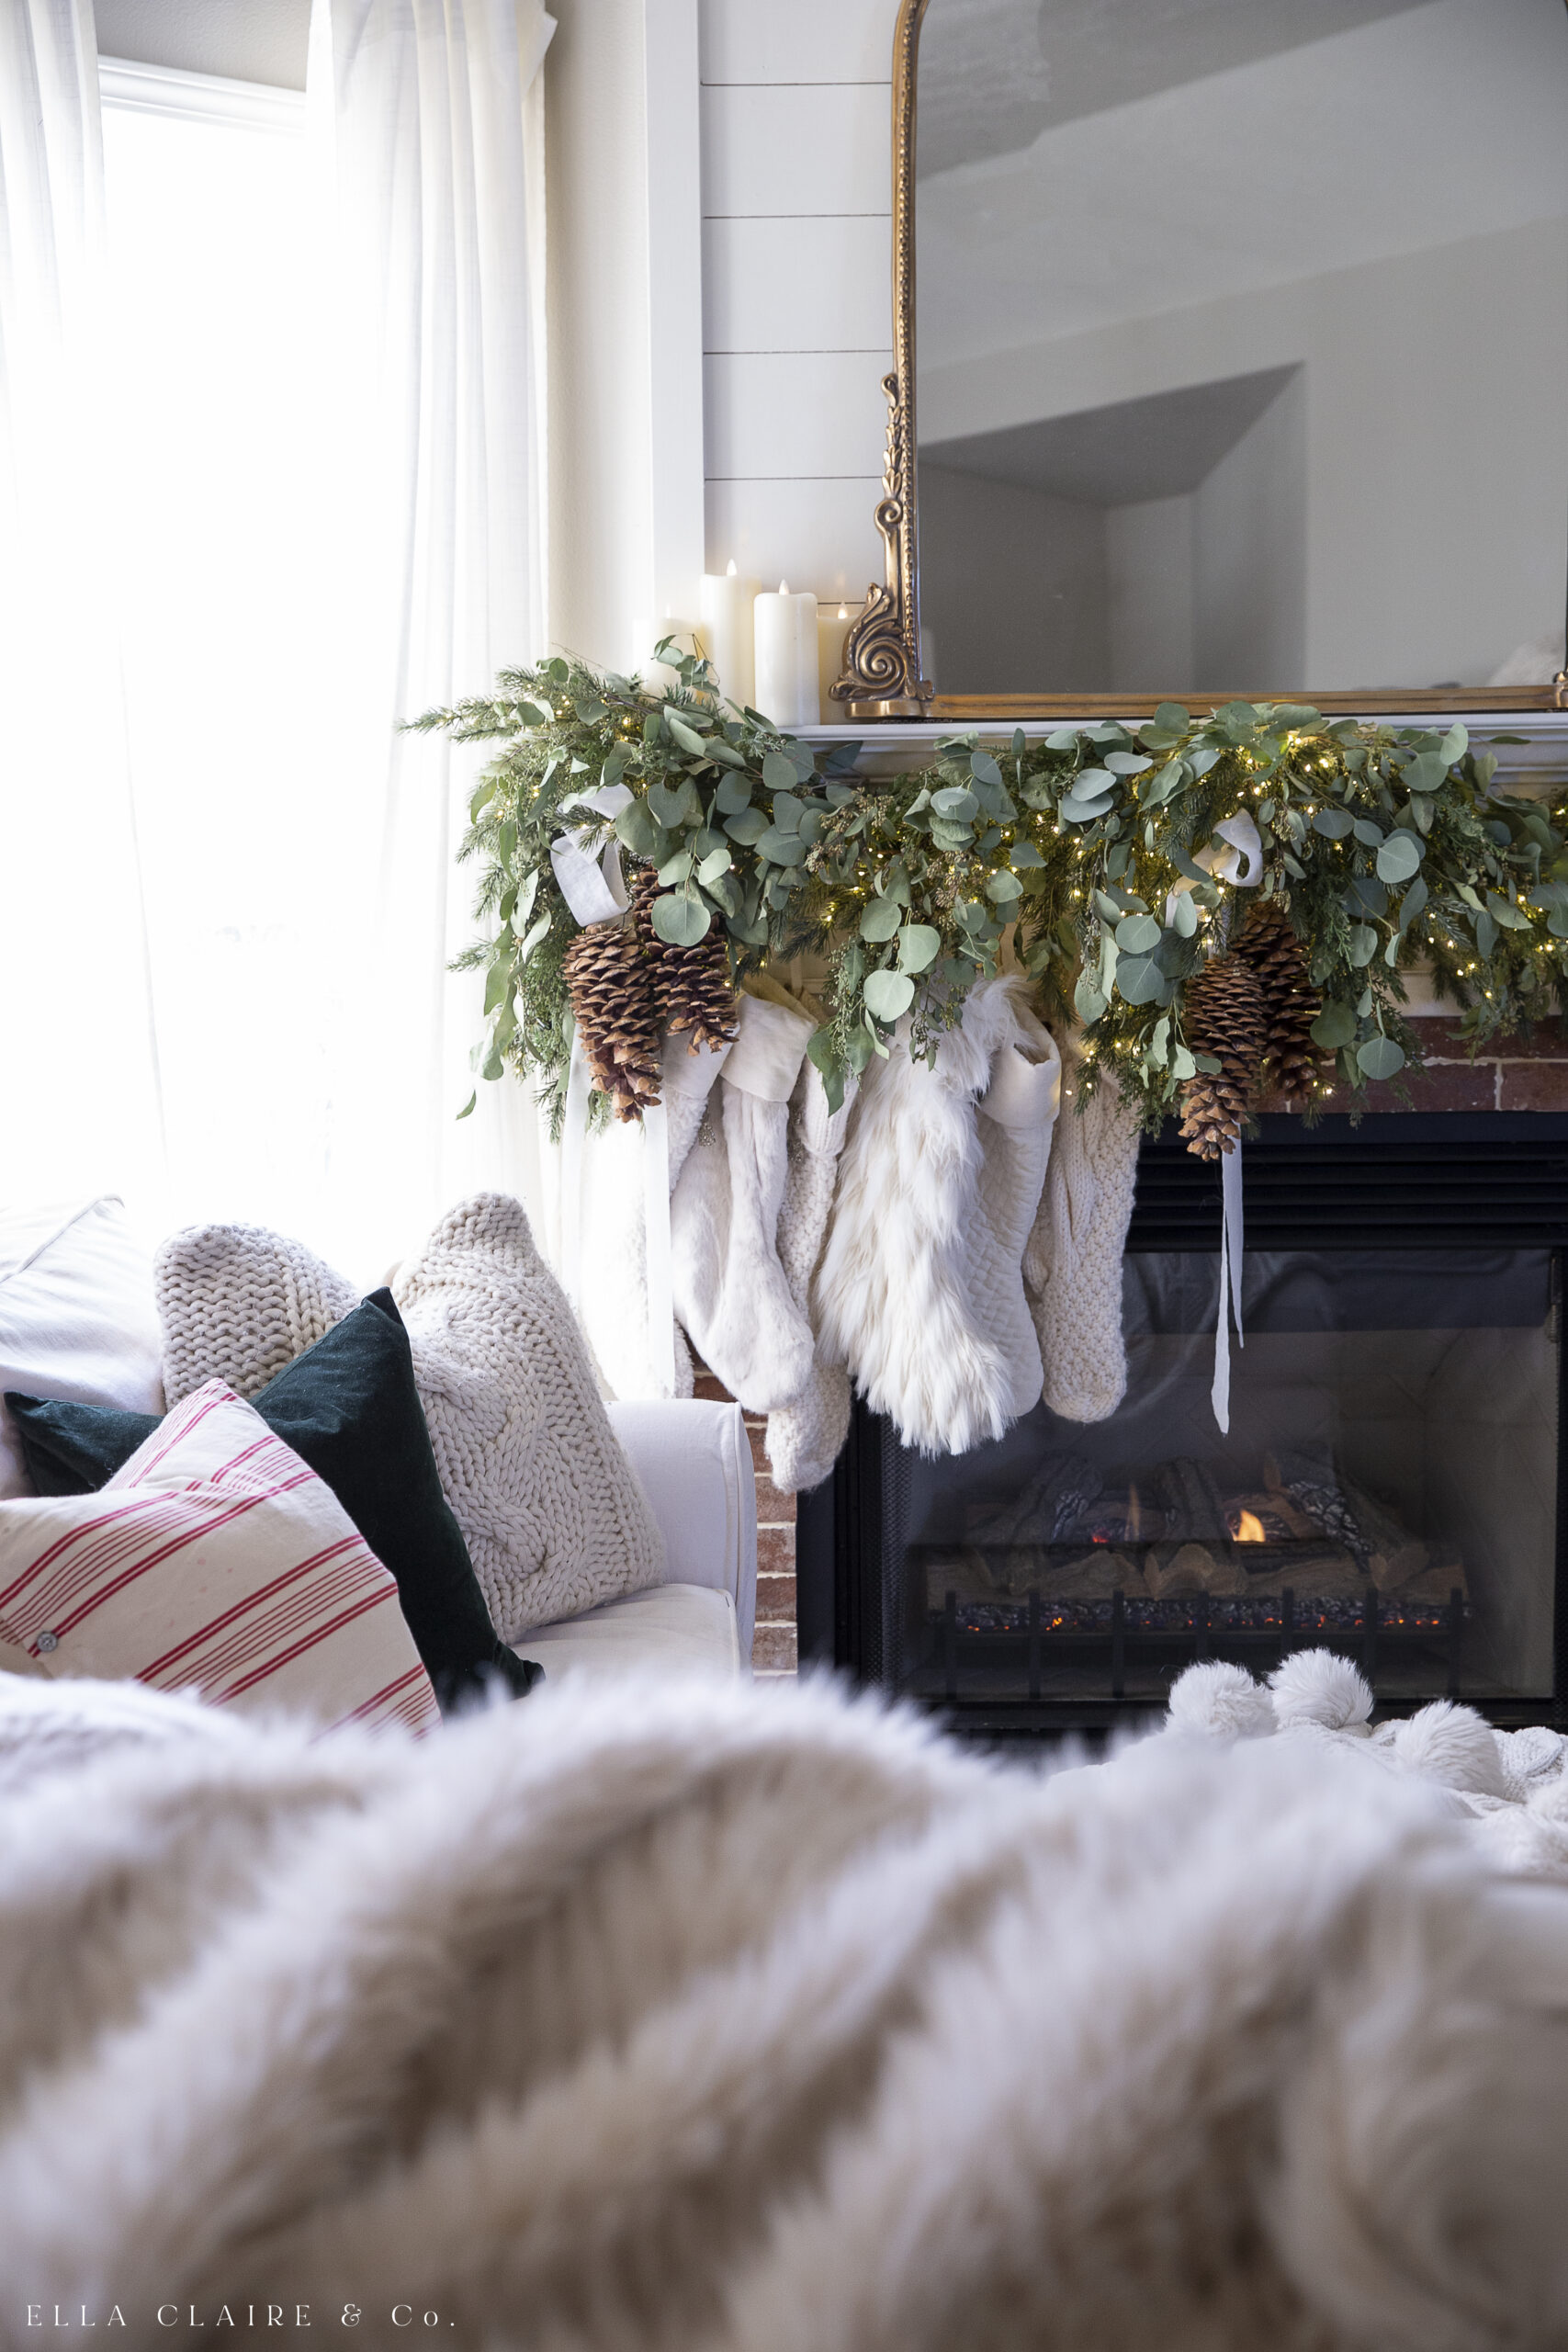 stockings hung on mantel with garland